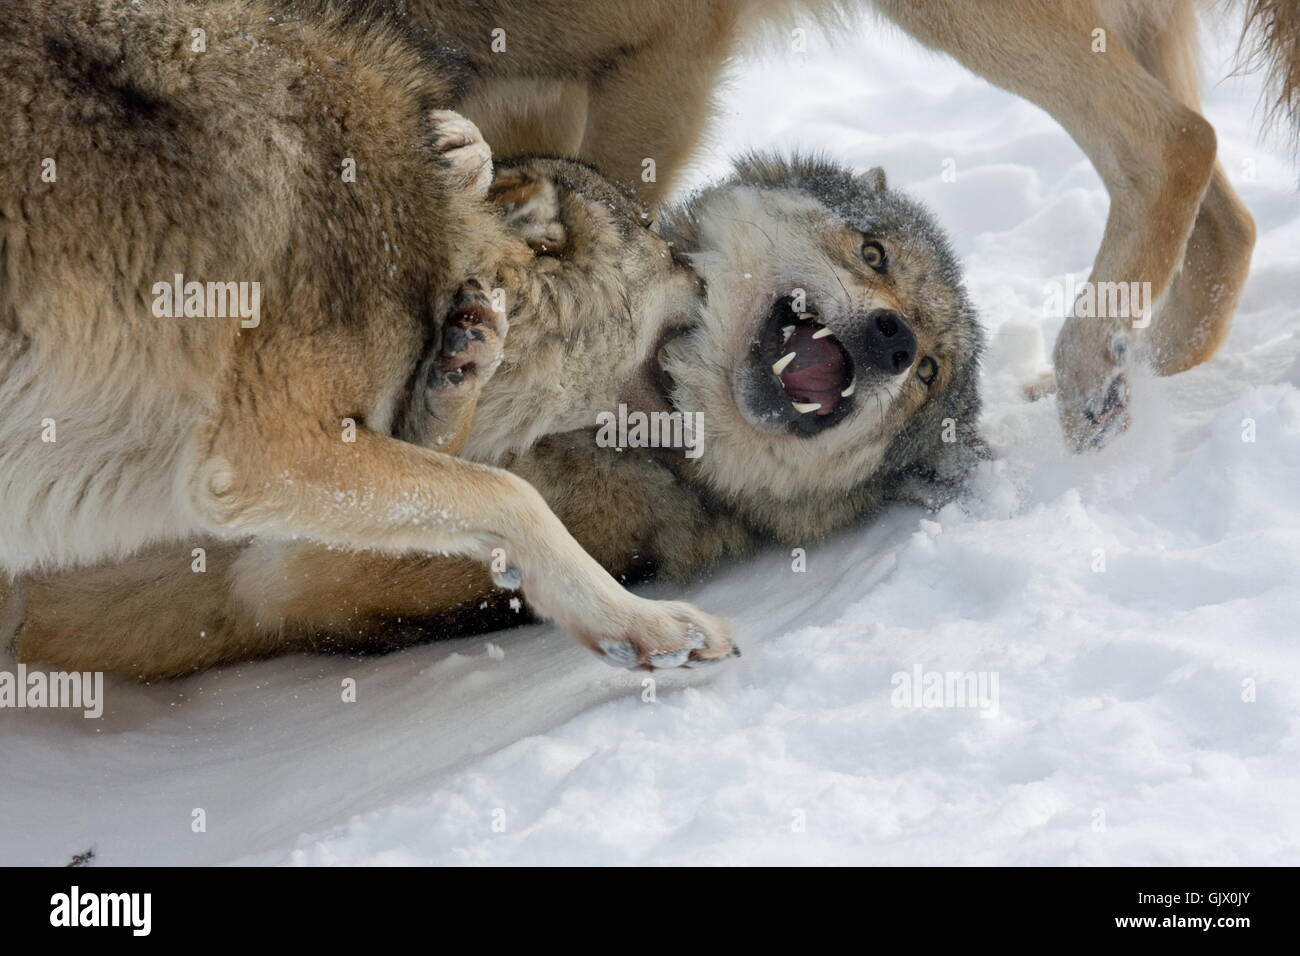 clash of the wolves - Stock Image